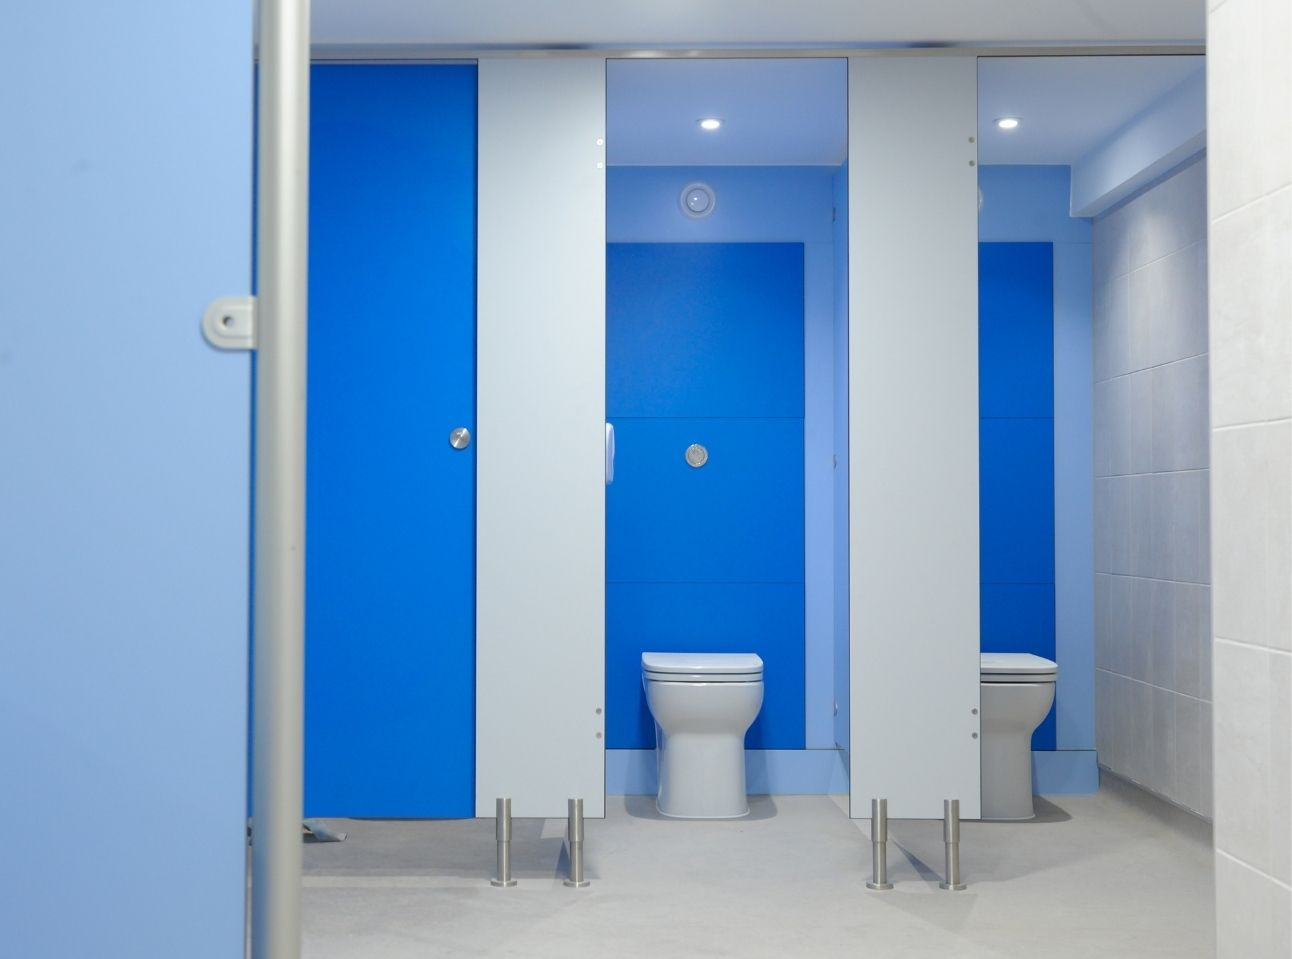 Bournemouth & Poole College Toilets Refurbishment   Case Study   Commercial Washrooms